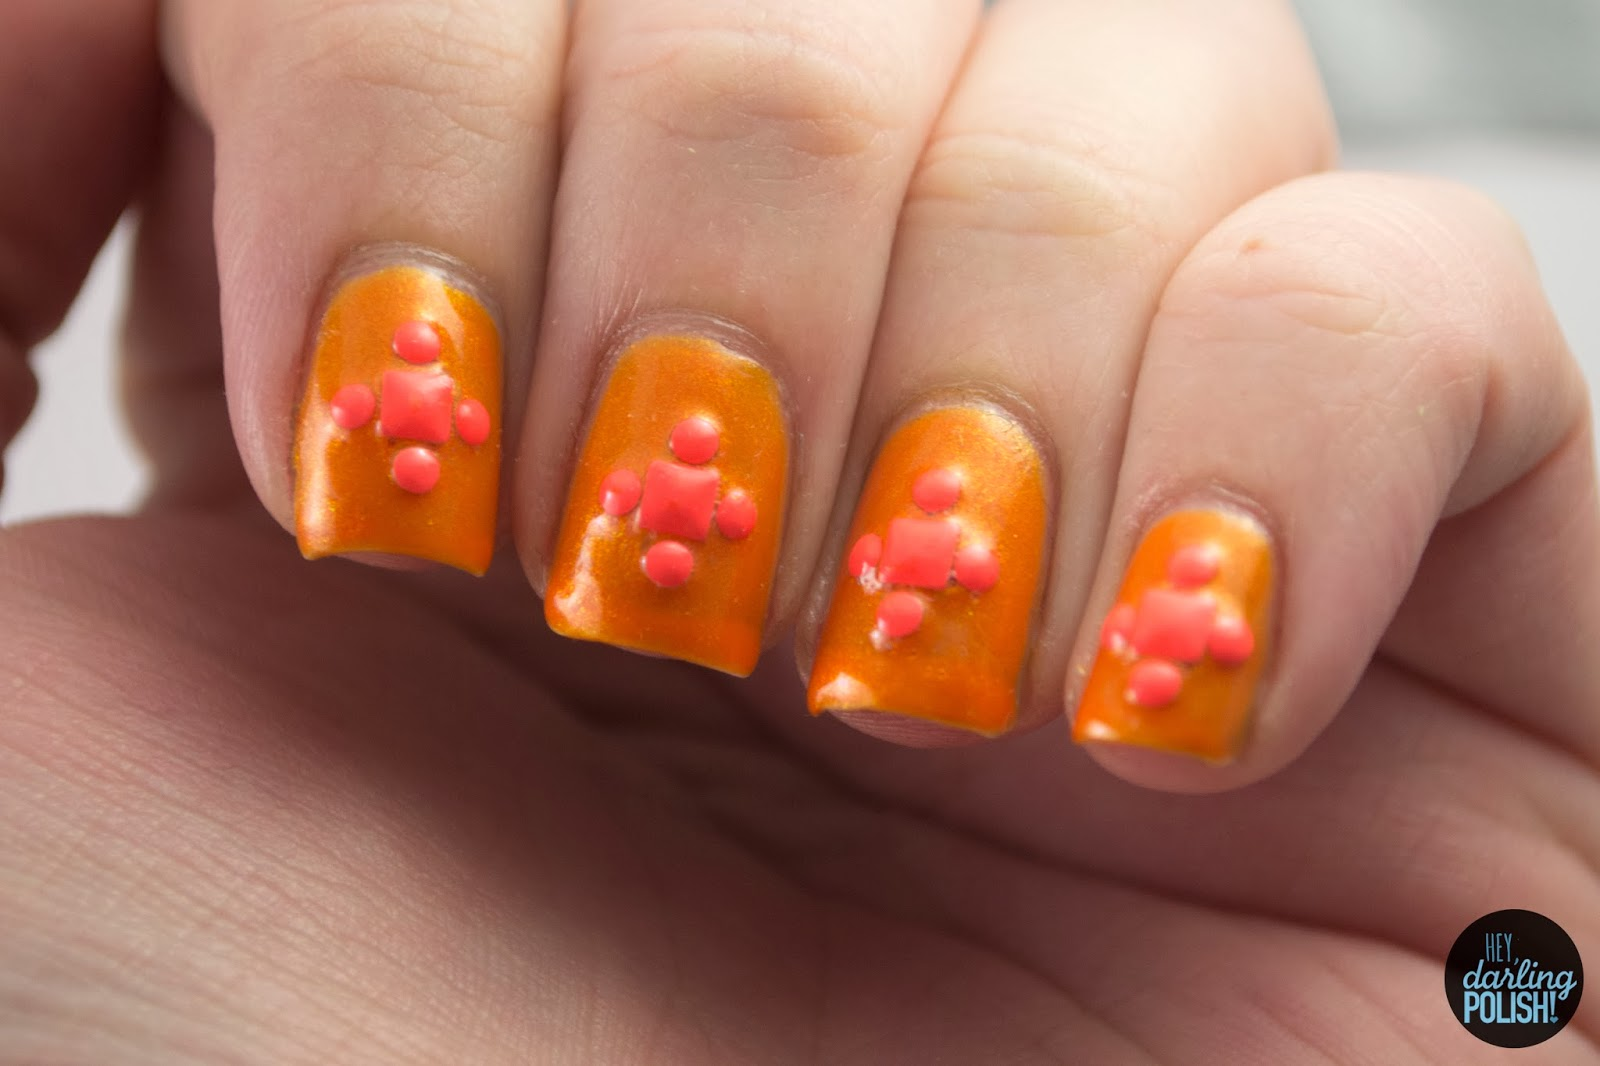 nails, nail art, nail polish, orange, studs, golden oldie thursdays, hey darling polish